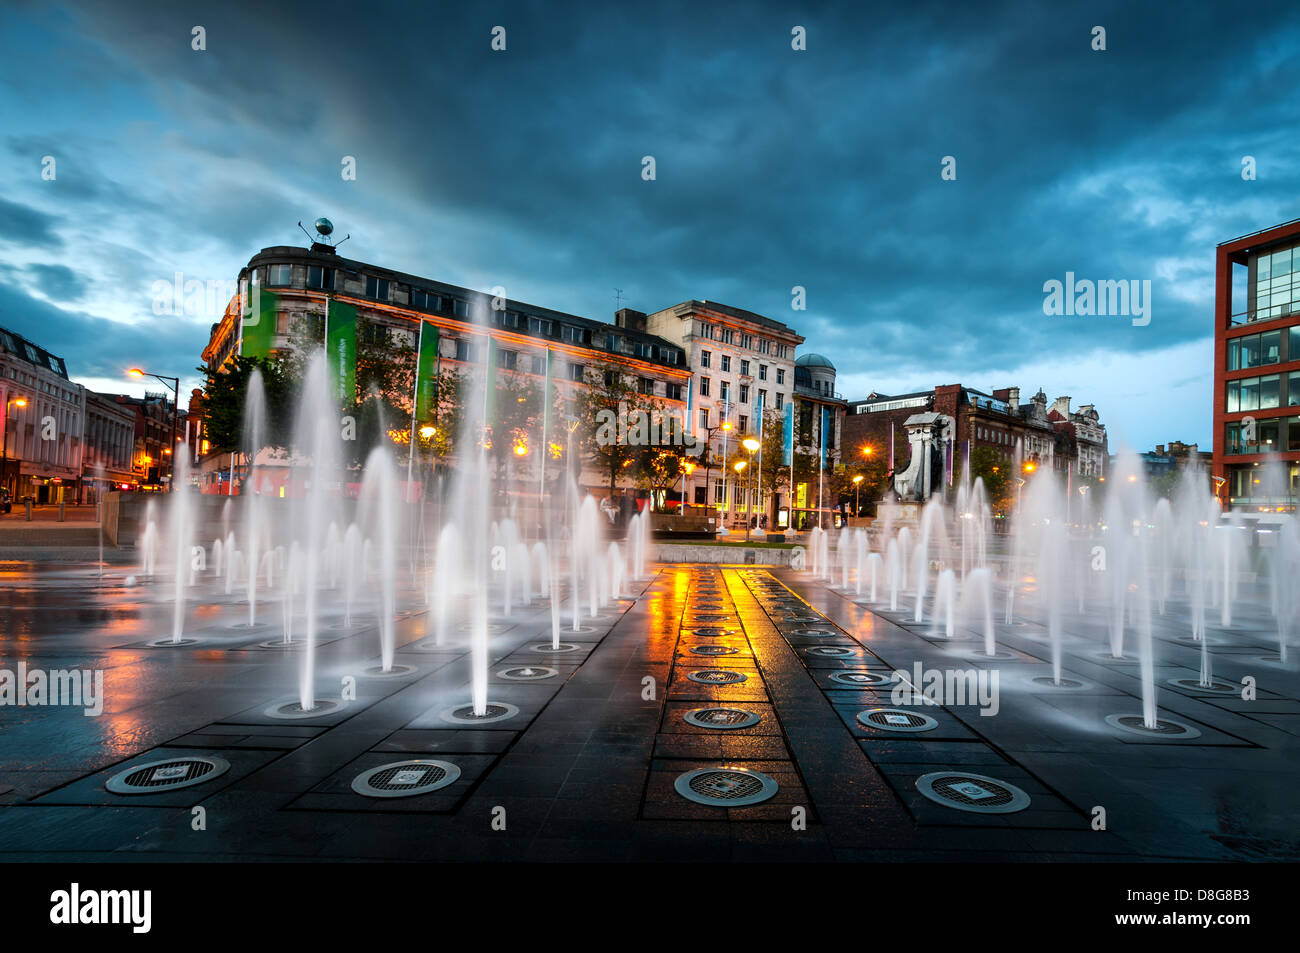 Piccadilly garden in the city centre of Manchester England, where people come to relax and enjoy the atmosphere. - Stock Image